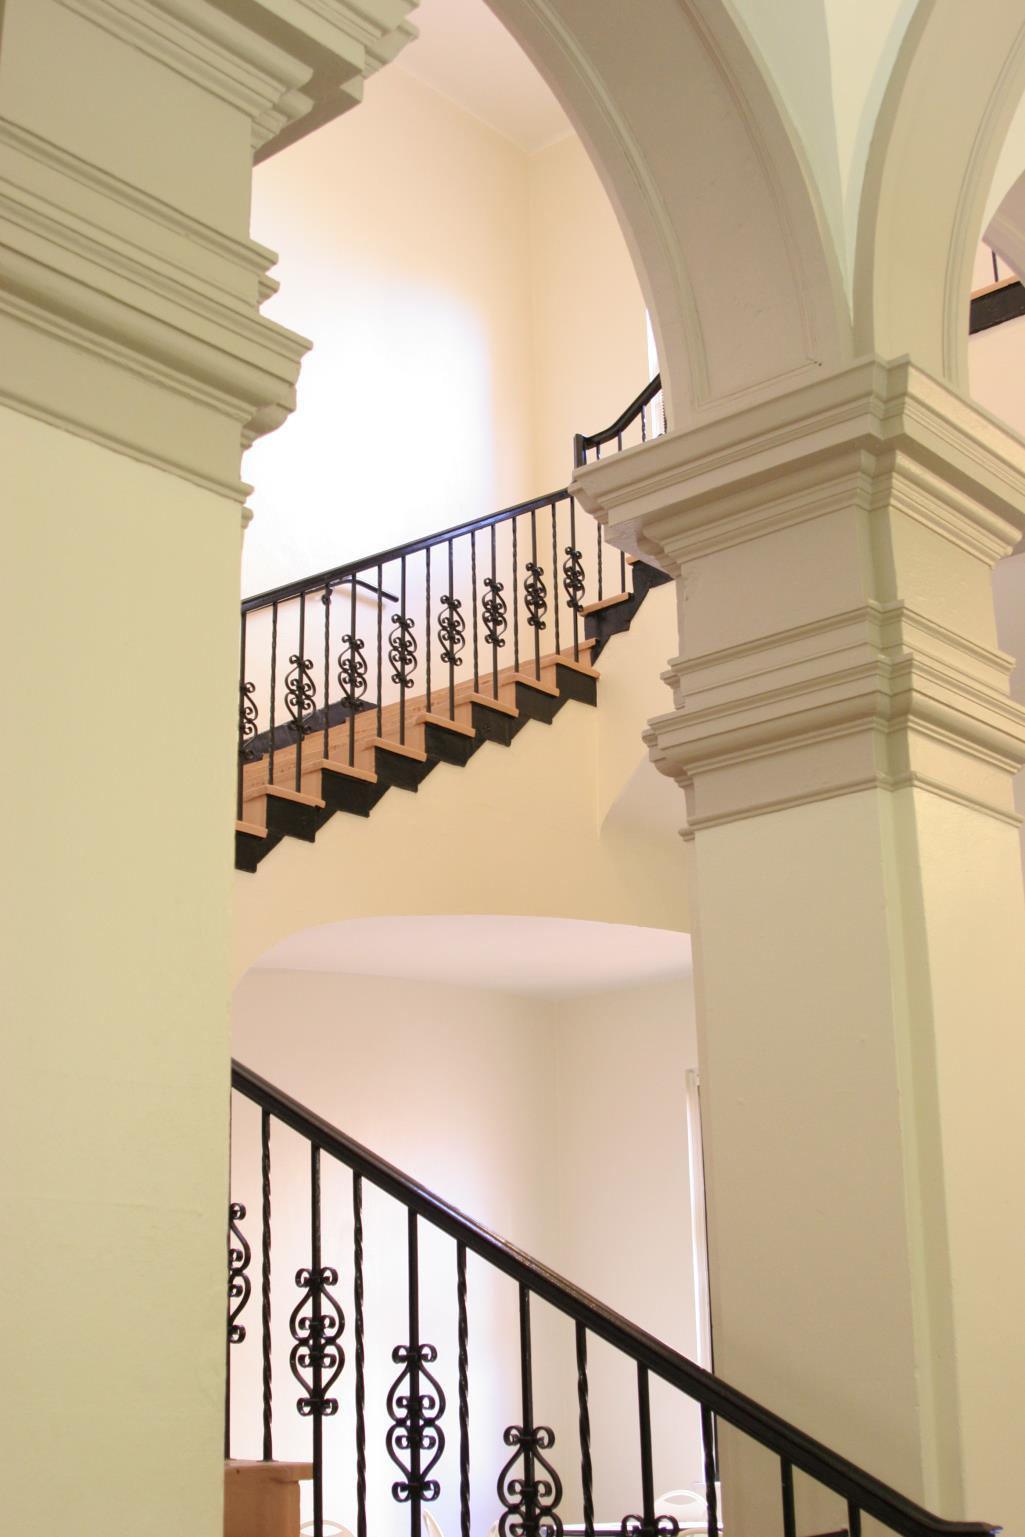 Photo of the grand staircase at Sarasota Historic Courthouse.